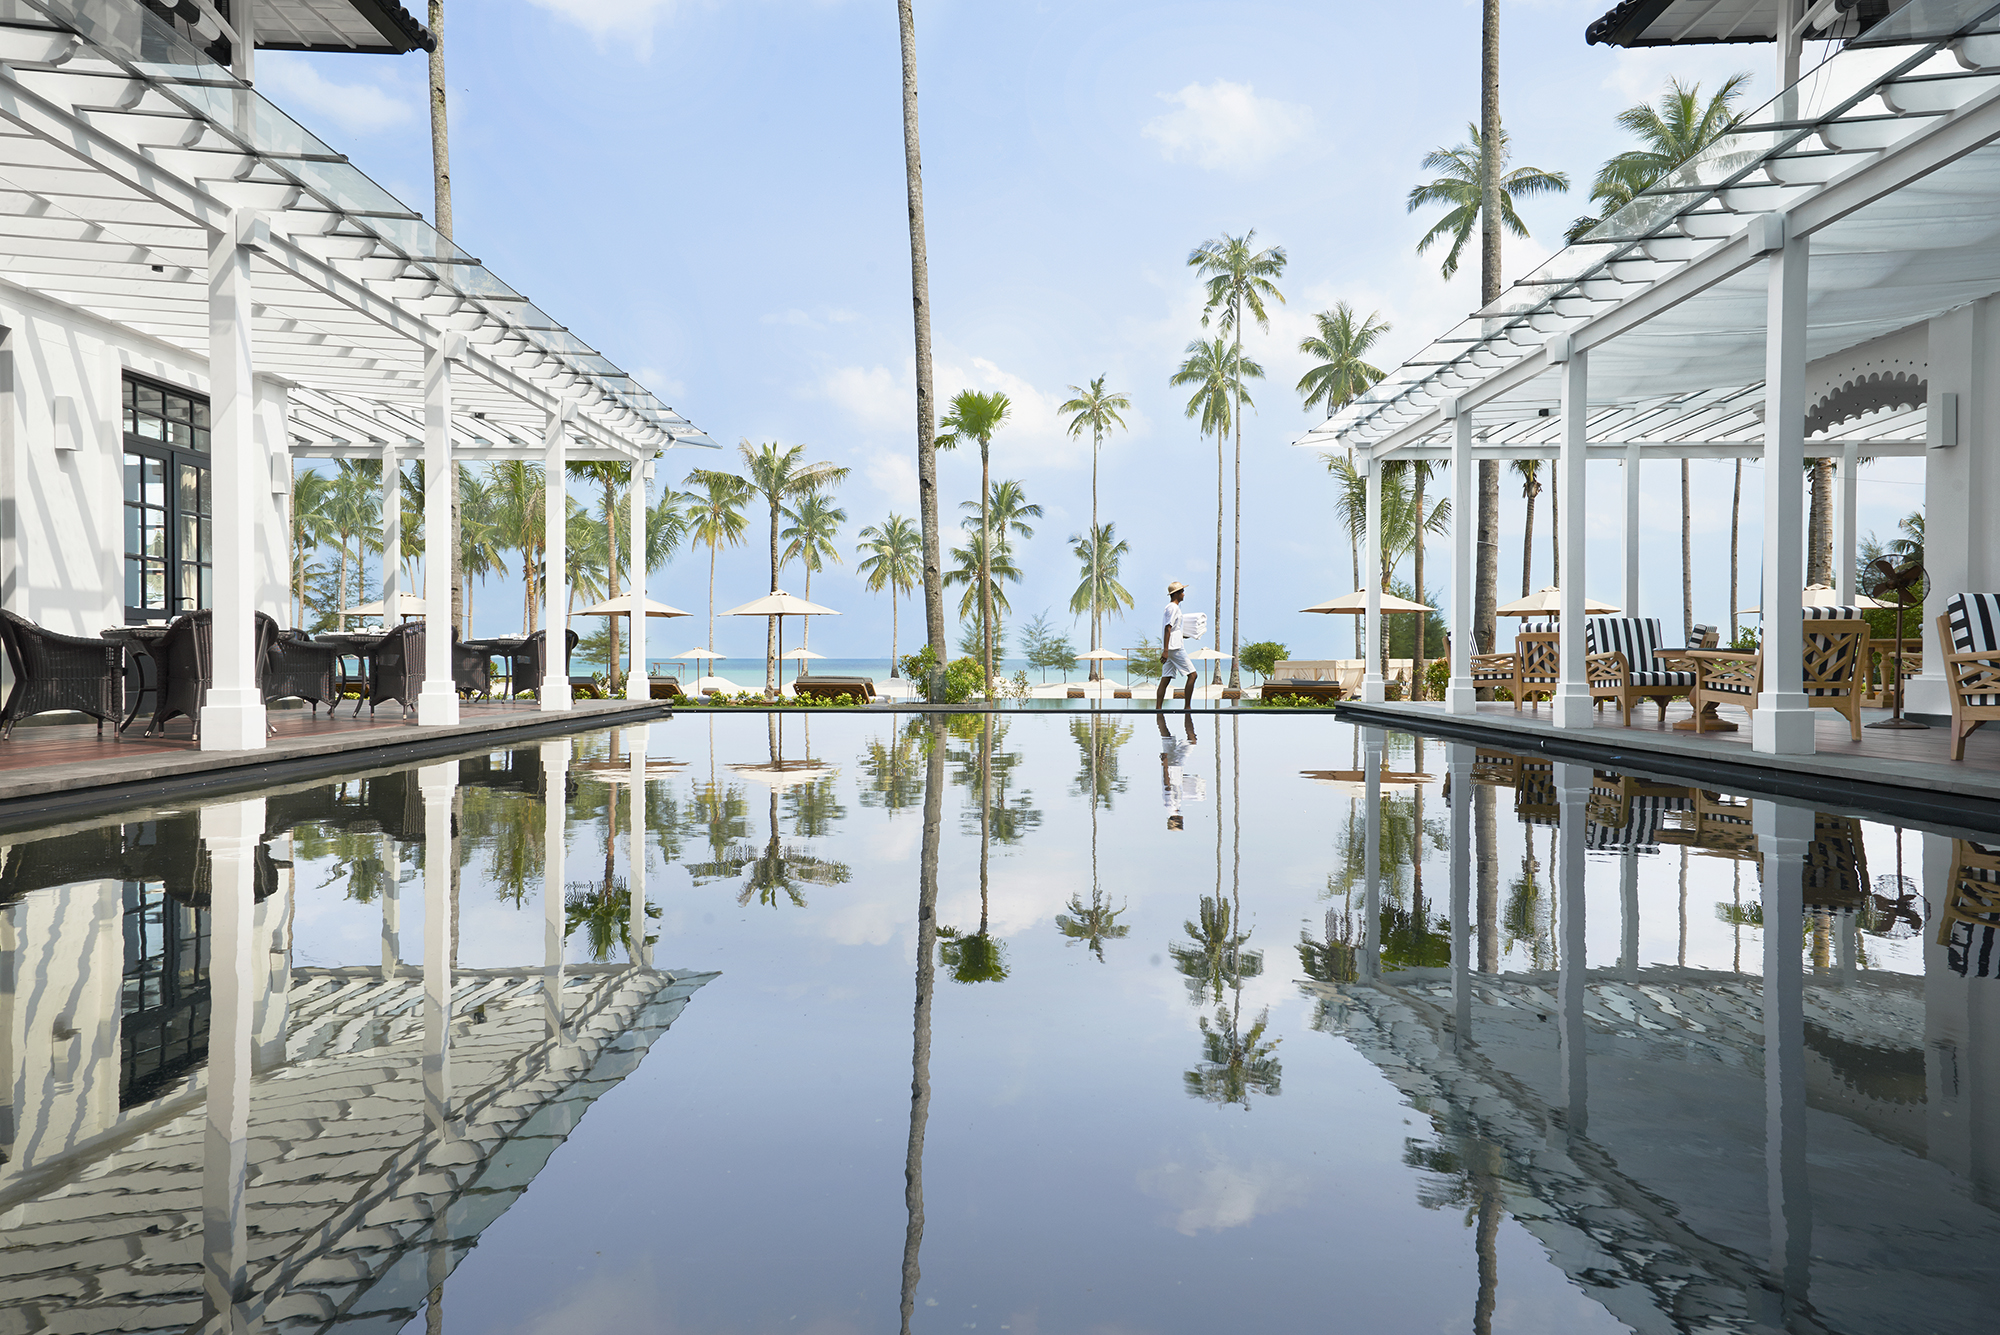 The Sanchaya: A Grand Beachfront Resort in Bintan